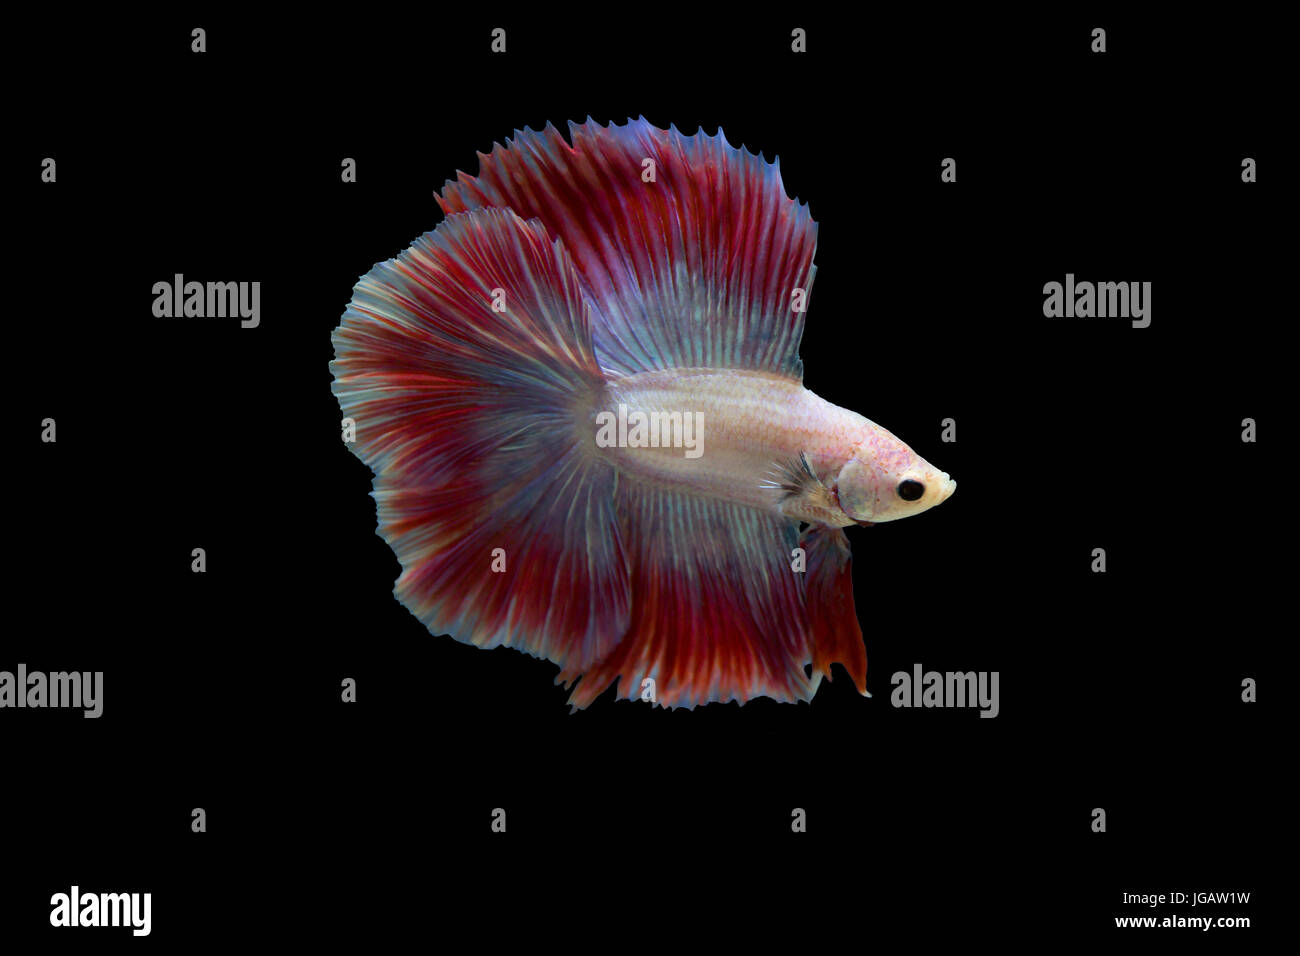 Siamese fighting fish in black background Stock Photo